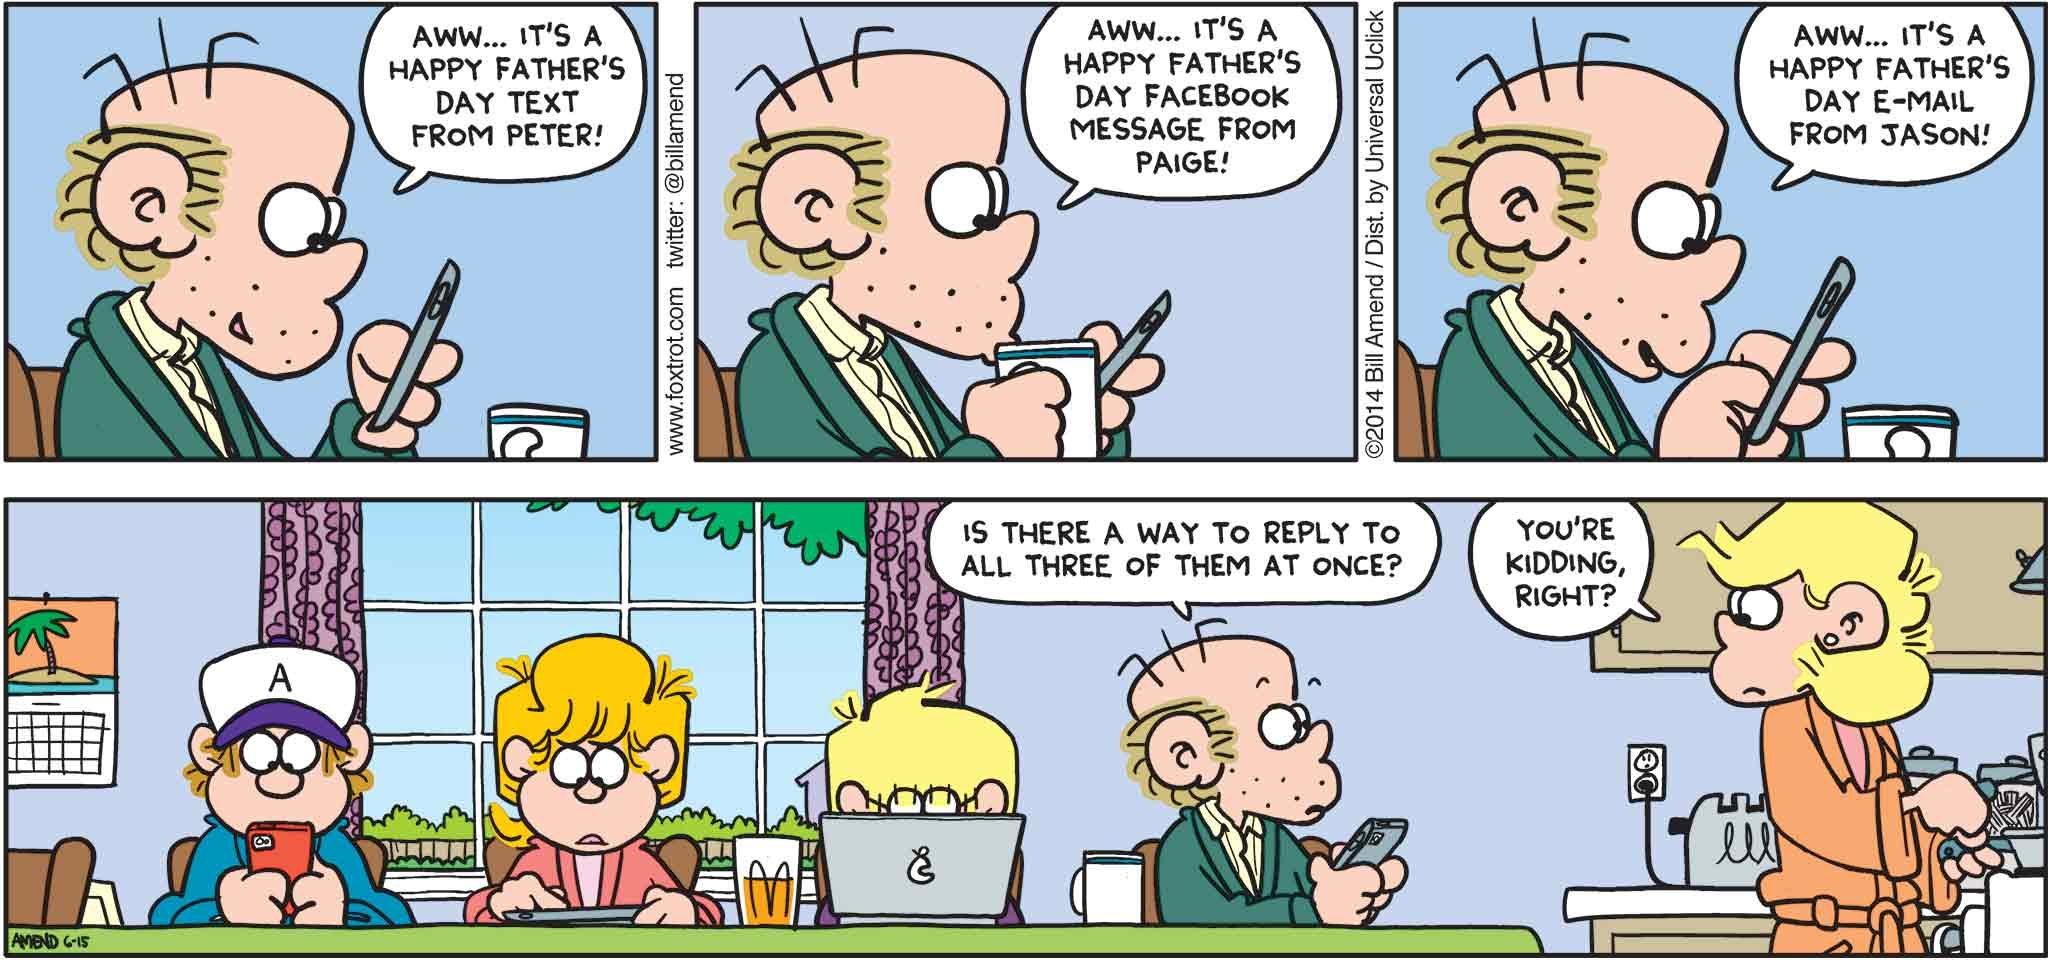 FoxTrot by Bill Amend - Father's Day comic published June 15, 2014 - Roger: Aww... It's a Happy Father's Day text from Peter! Aww... It's a Happy Father's Day Facebook message from Paige! Aww... It's a Happy Father's Day email from Jason! Roger: Is there a way to reply to all three of them at once? Andy: You're kidding, right?